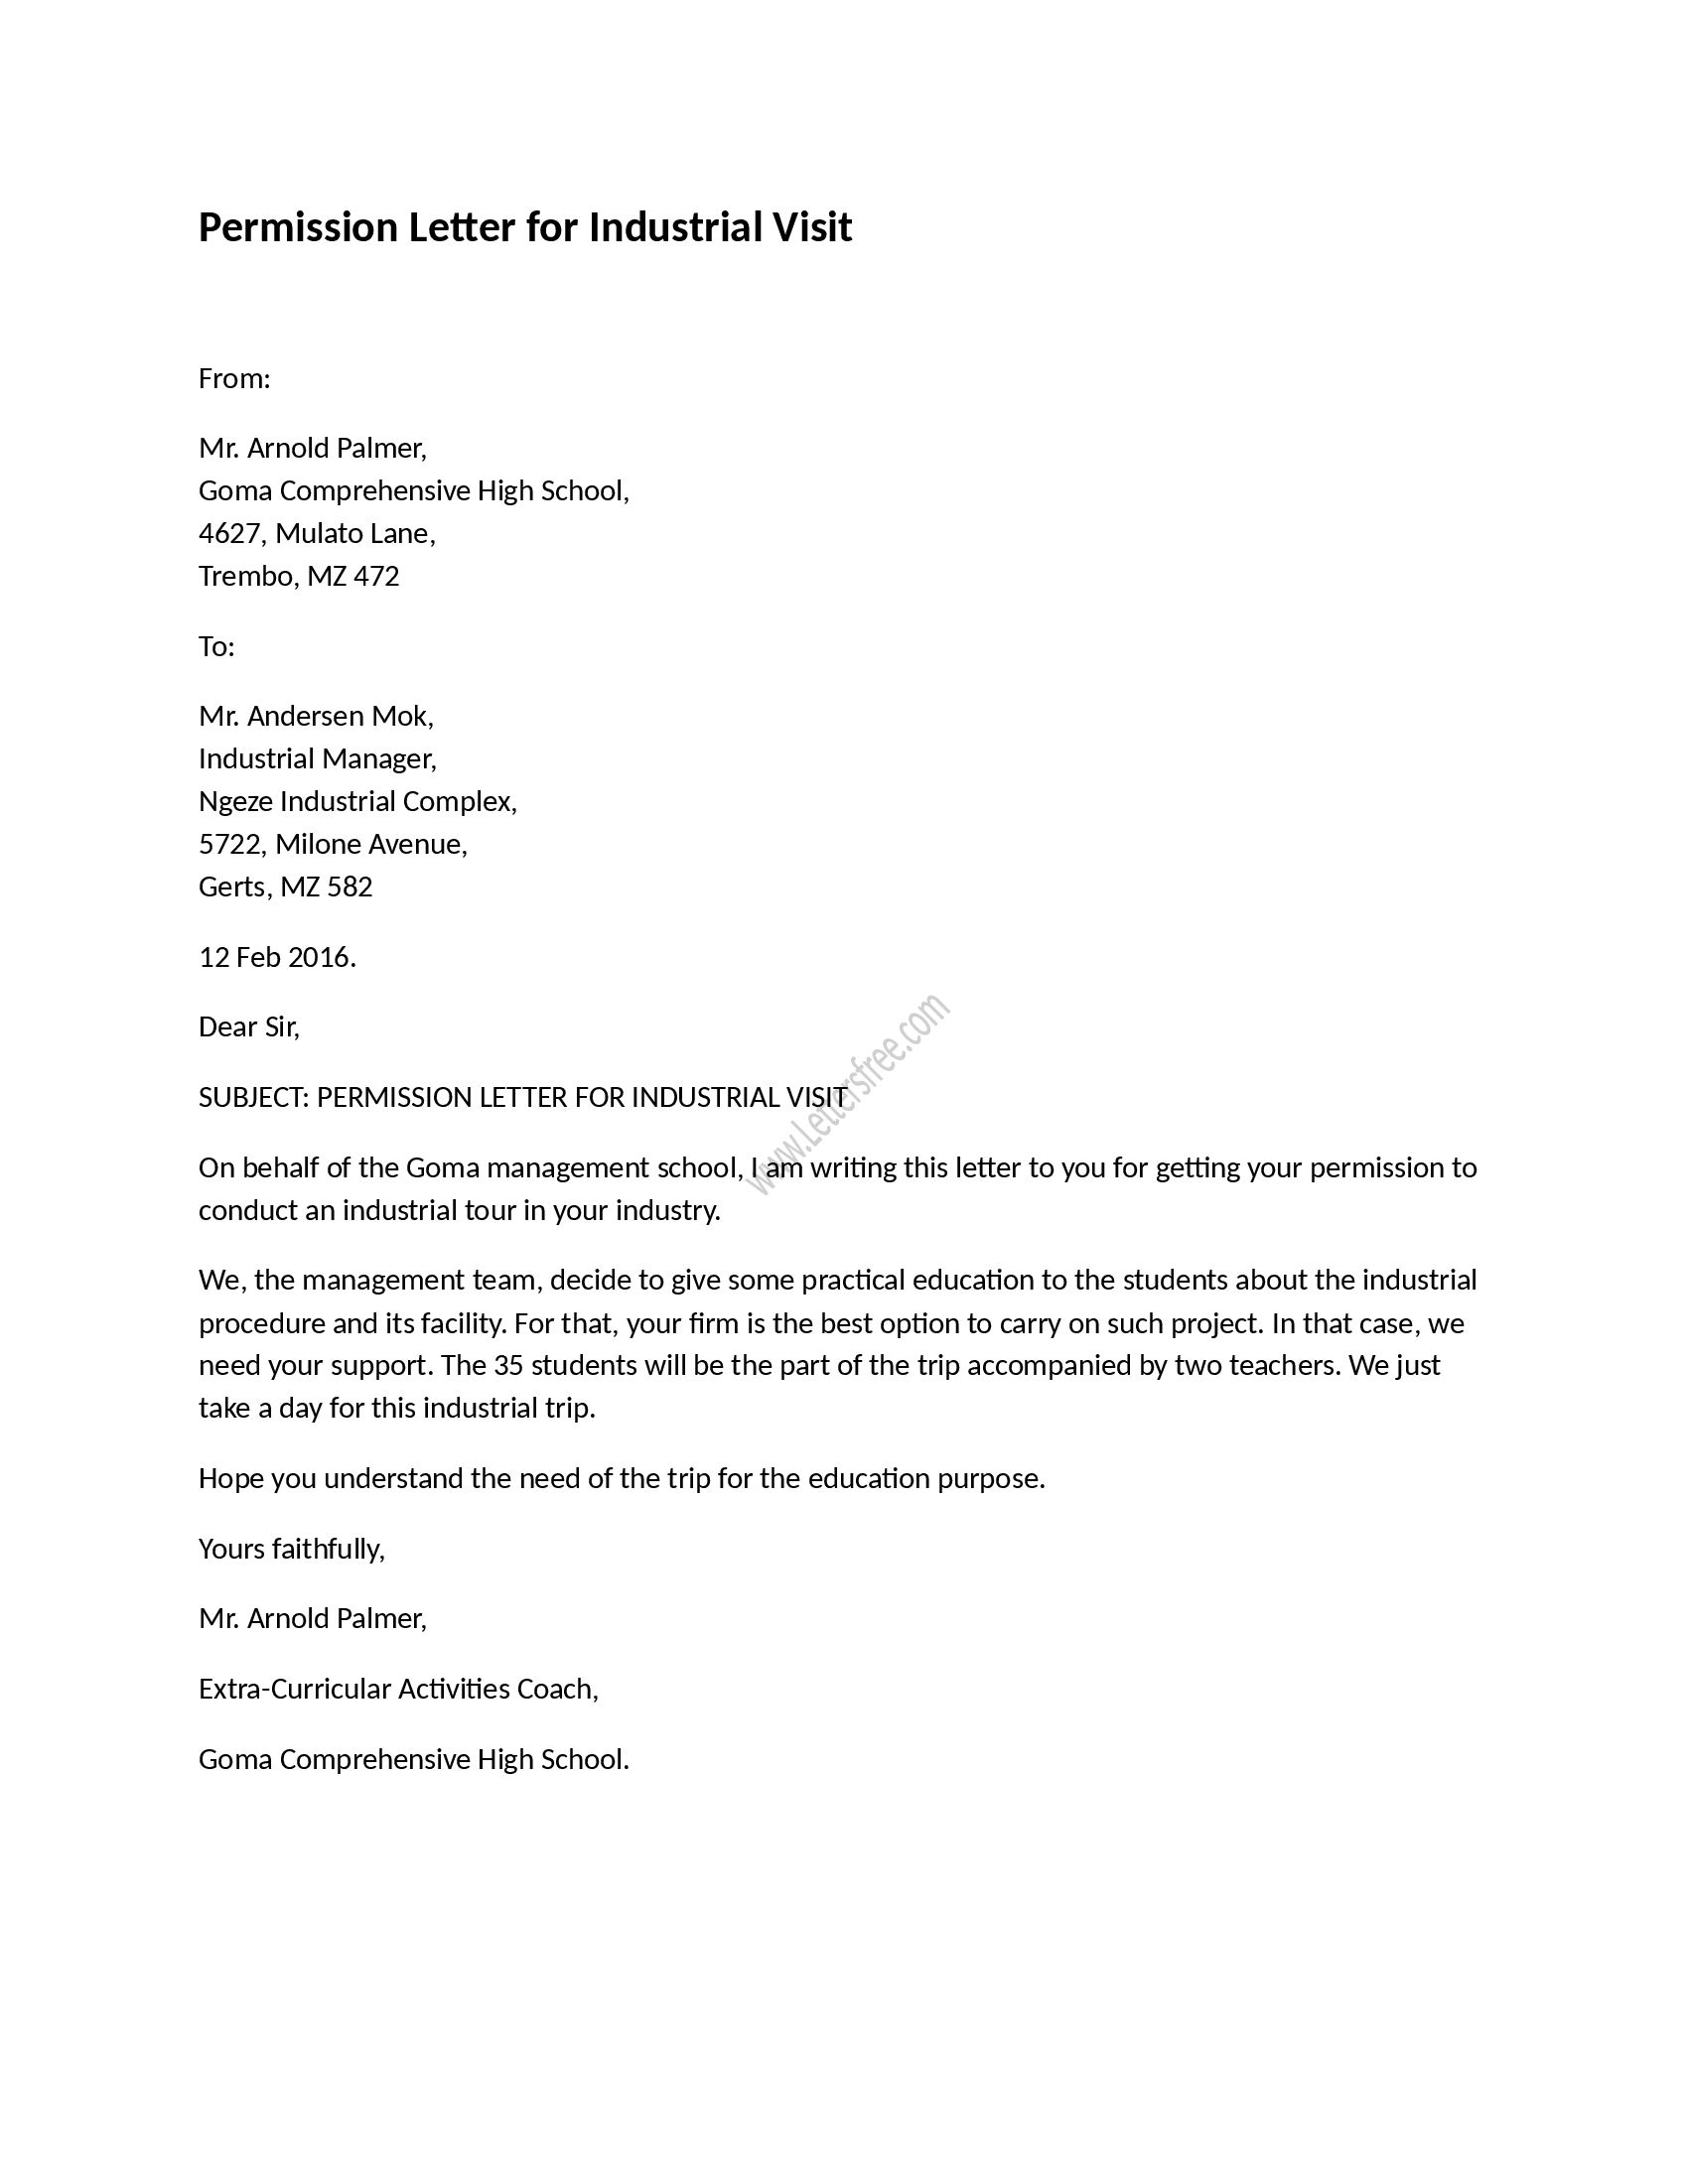 Example of permission letter for industrial visit, as its